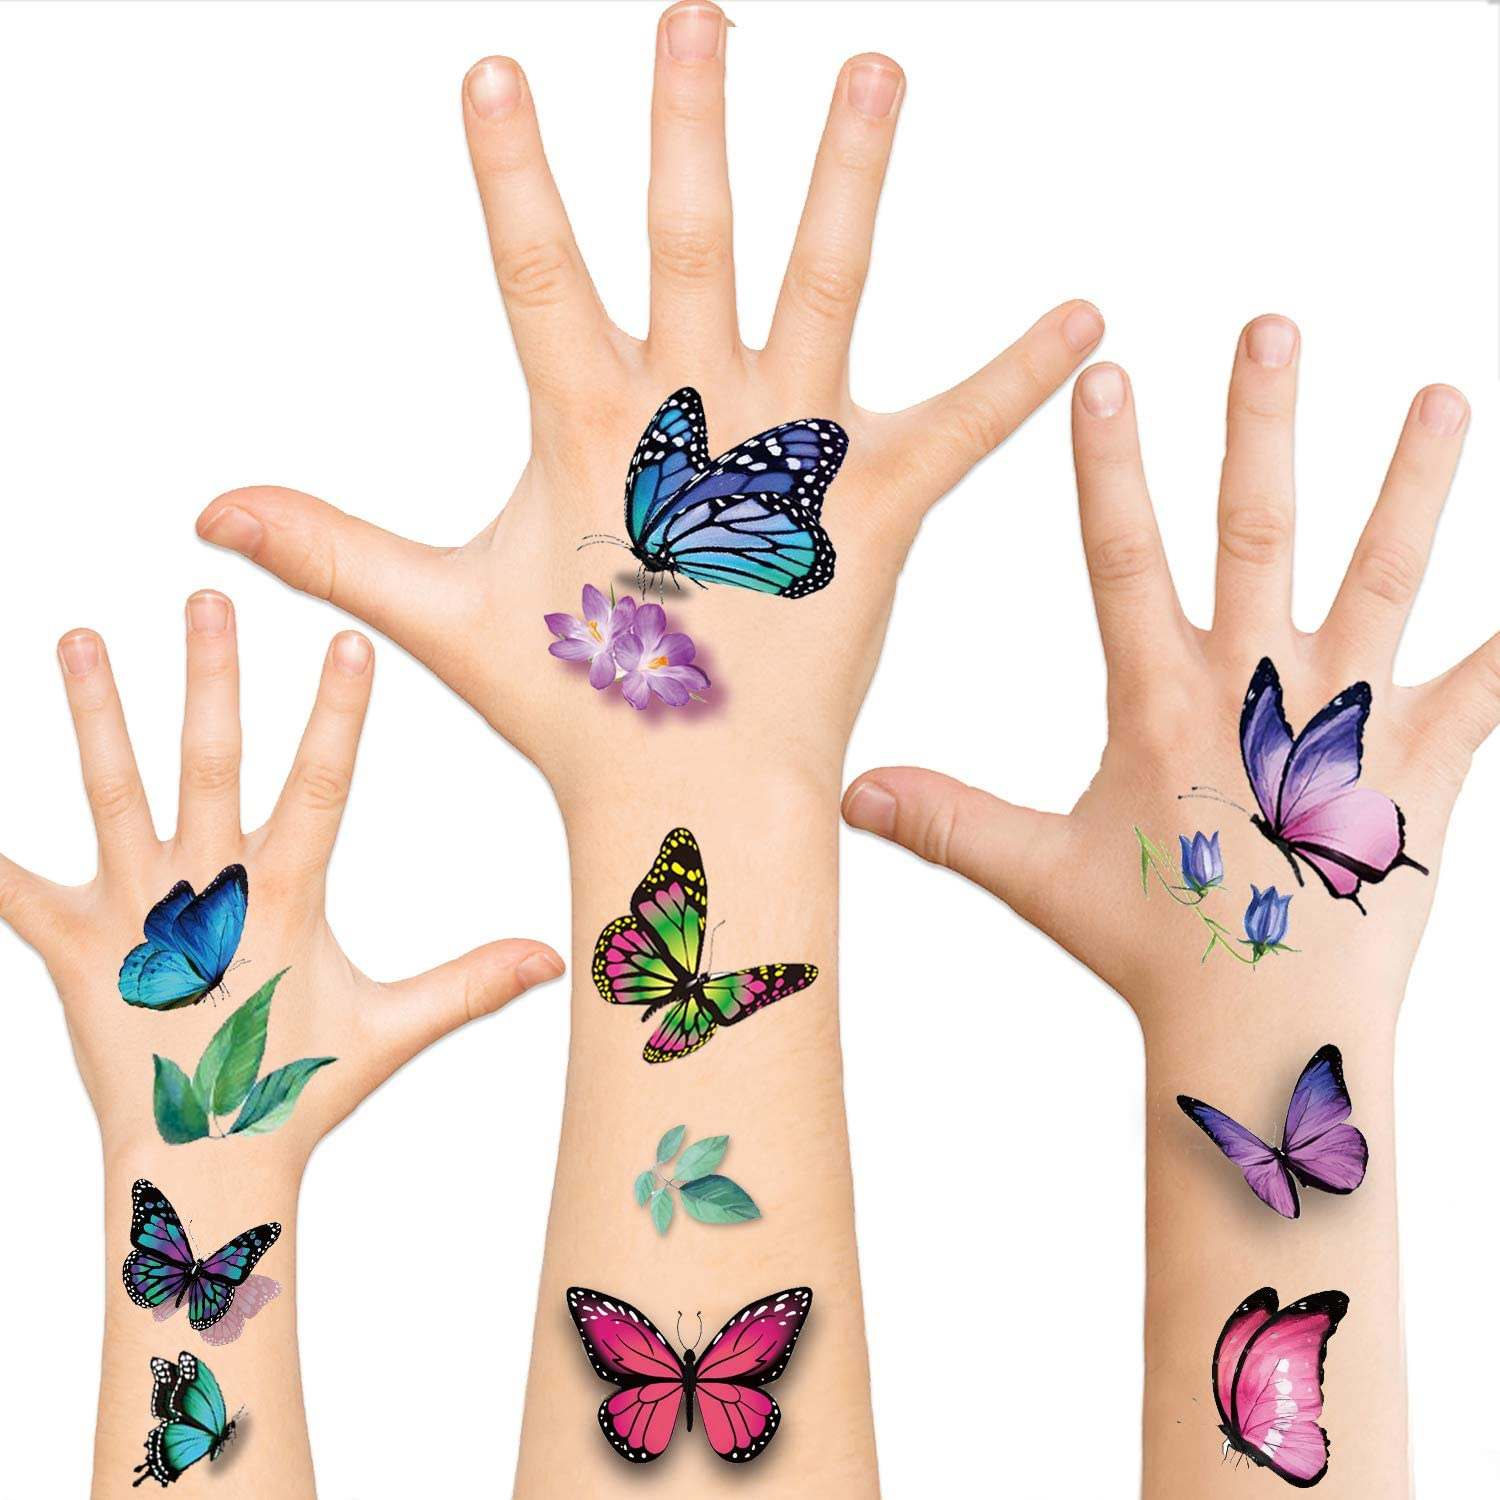 Butterfly Temporary Tattoos For Women 3d Butterfly Colorful Fake Tattoos Sexy Body Art Tattoo Stickers For Girls Adults 12 Sheets Amazon Co Uk Beauty